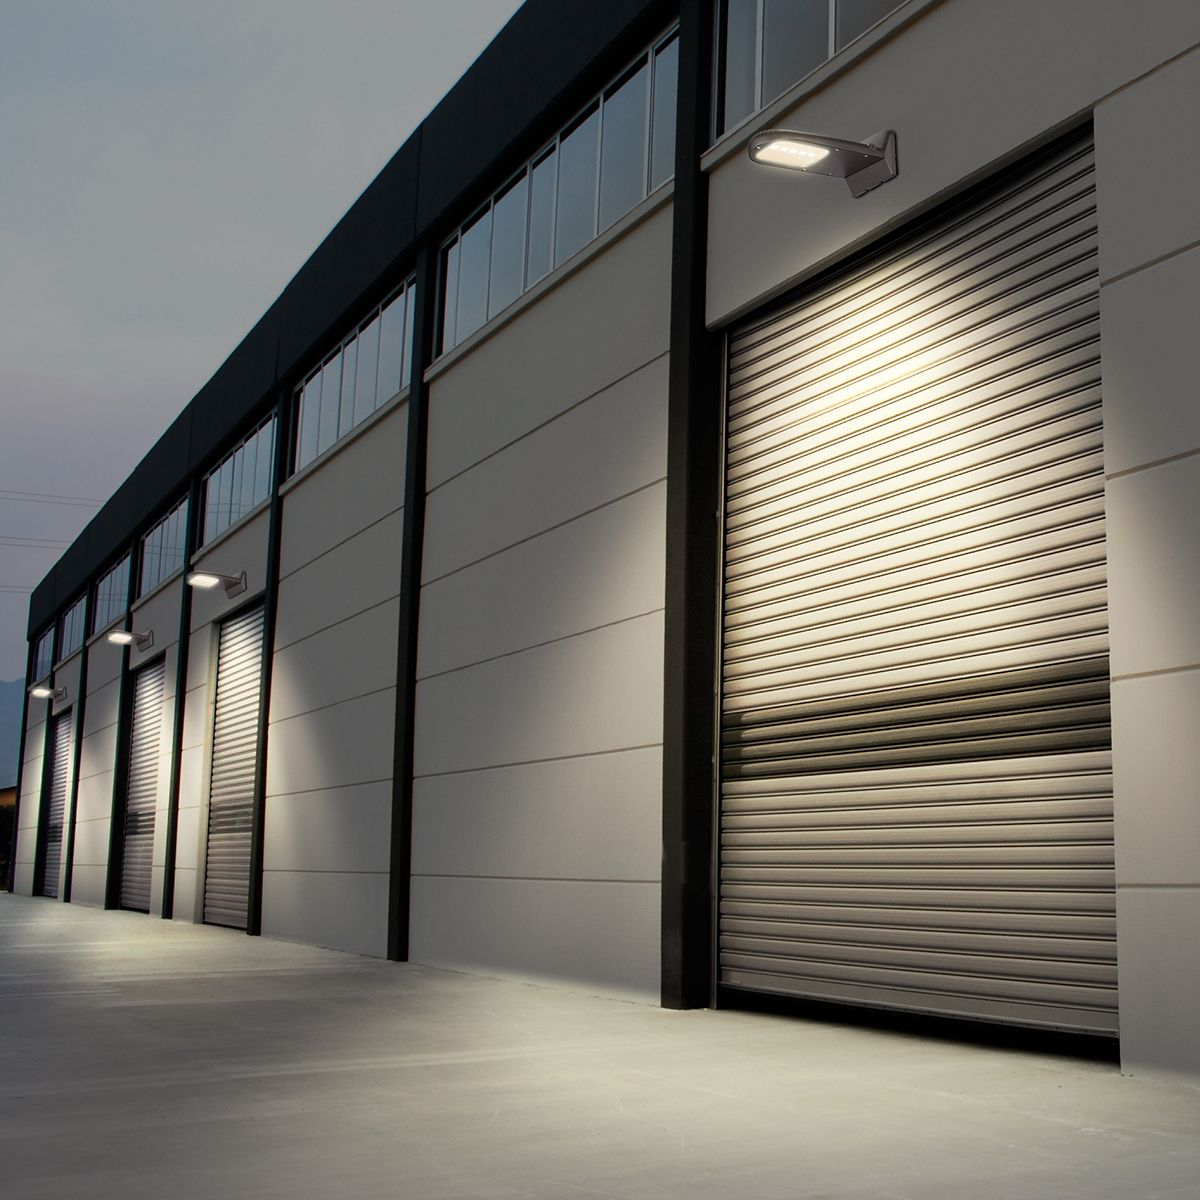 Outdoor Commercial Lighting For Warehouses And Storage Units Are Great For  Late Night Visits #outdoor